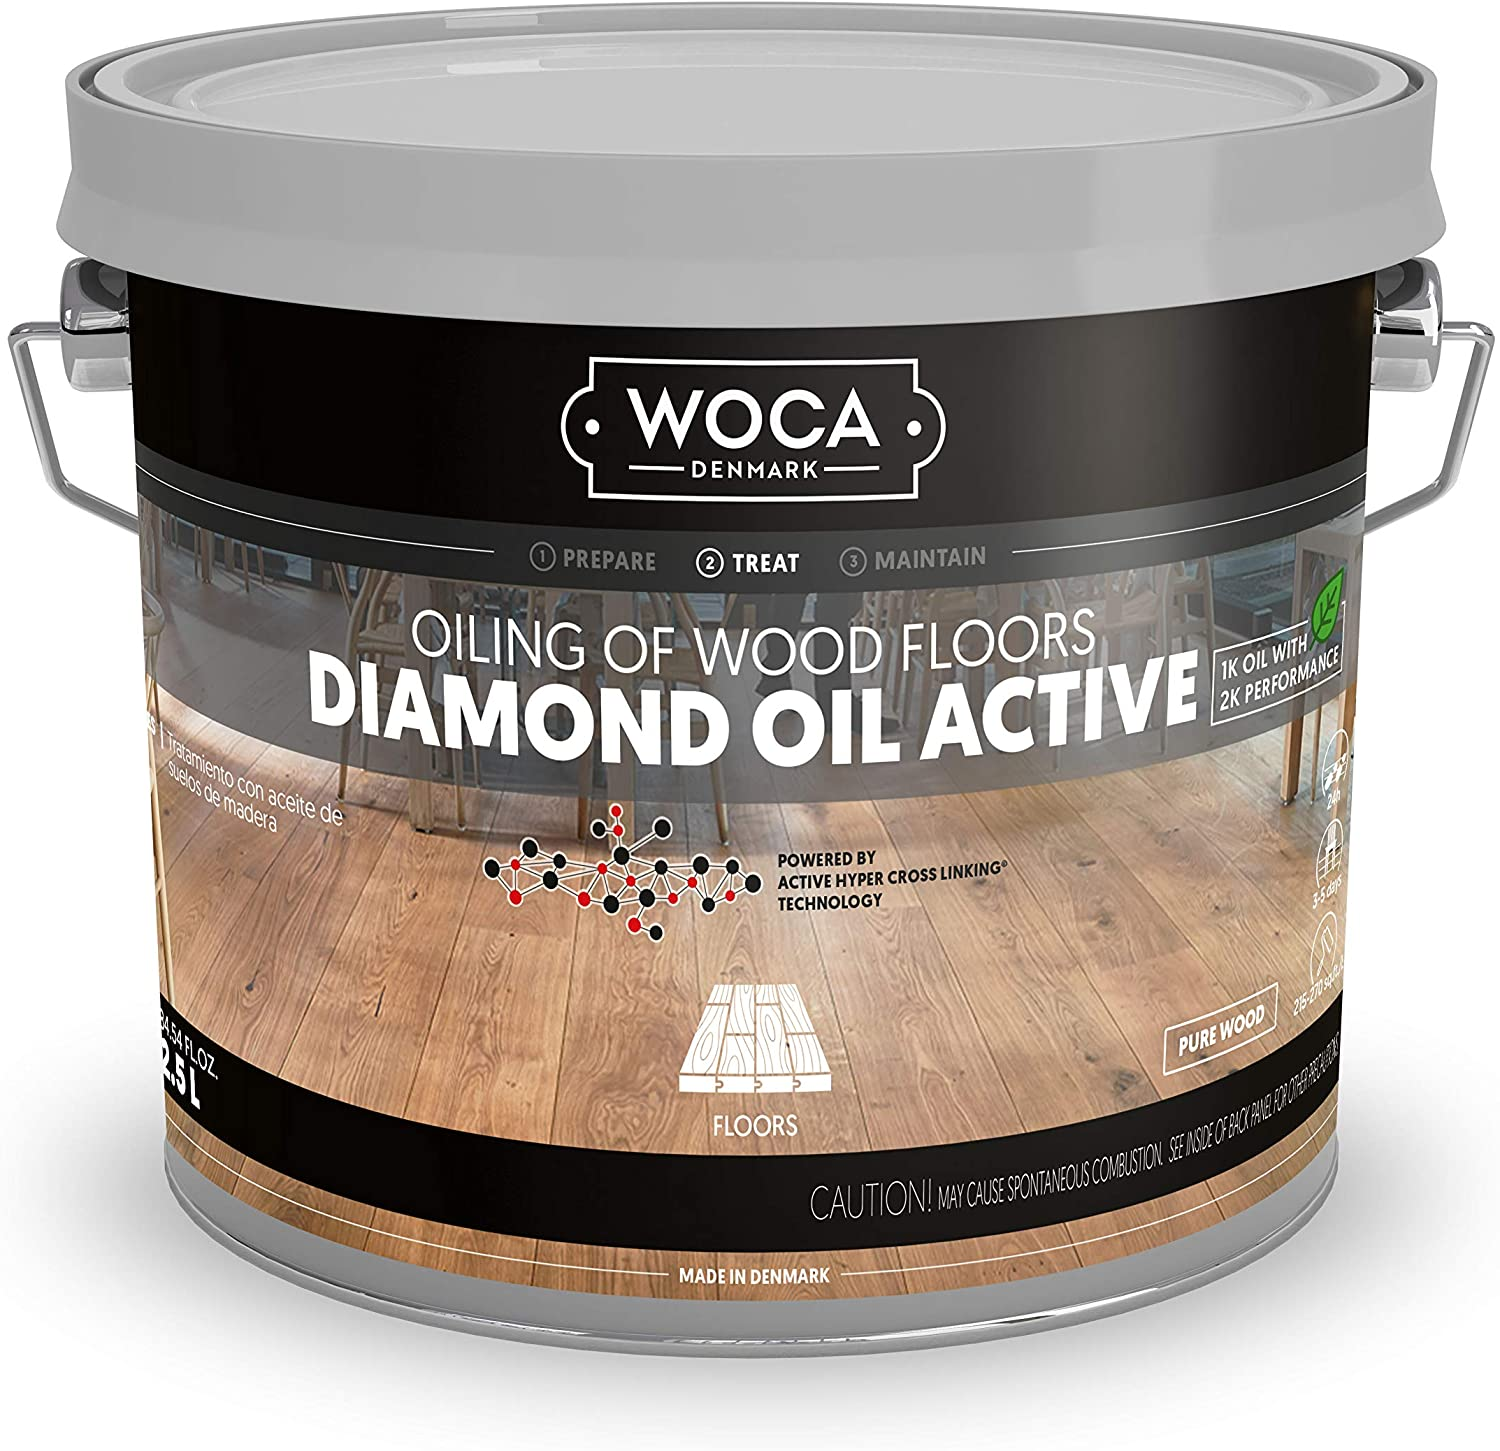 WOCA Denmark - Diamond Oil Active Wood Finish - Low VOC Plant Based Penetrating Oil for Untreated, New, or Newly-Sanded Wooden Surfaces (2.5L, Pure Wood)